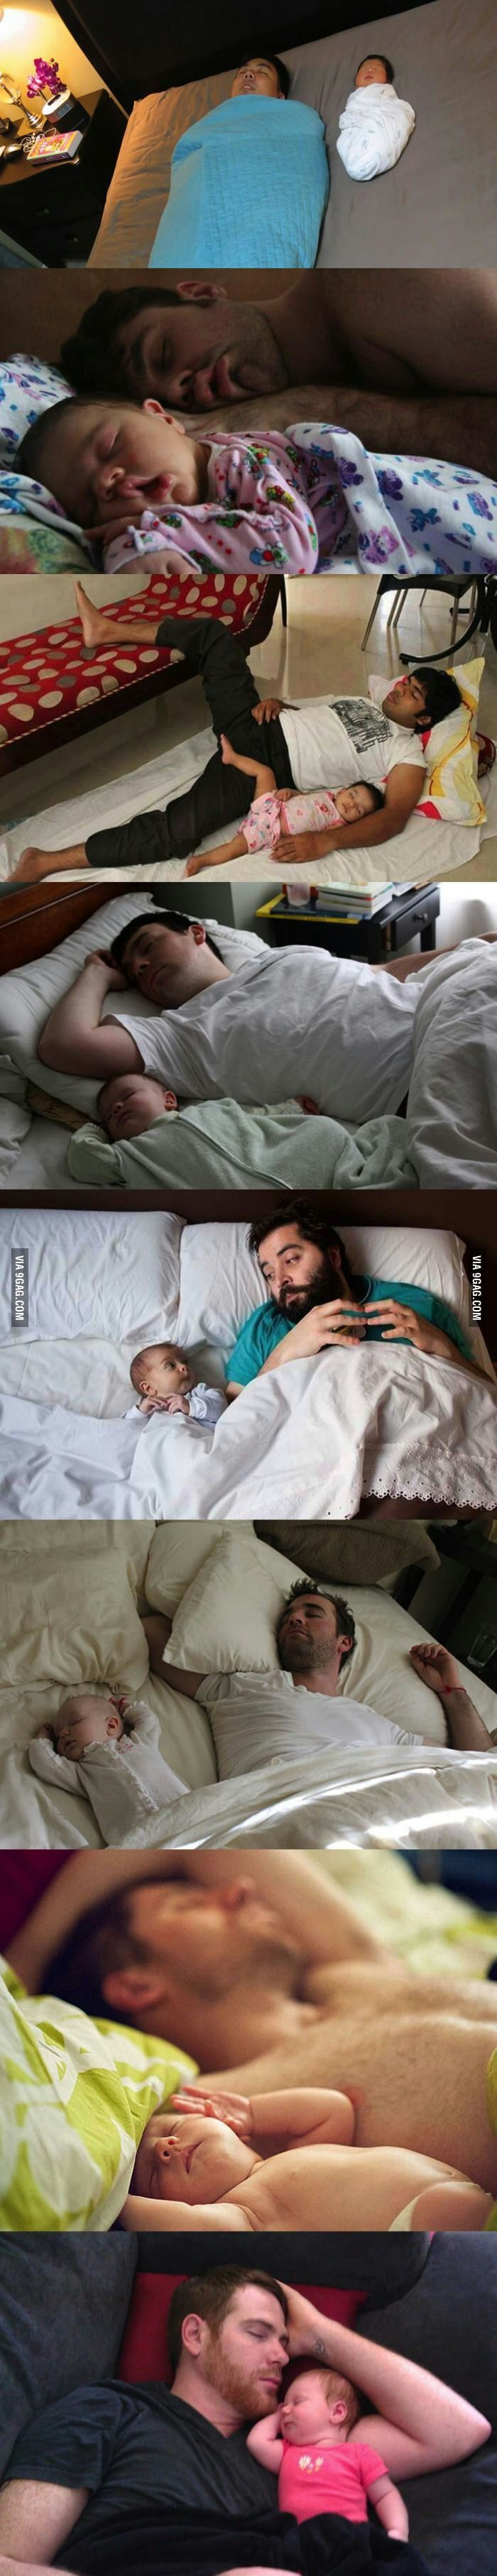 Oh this is adorable.. When I have kids I'm gonna be taking pictures just like this! So freakin cute!